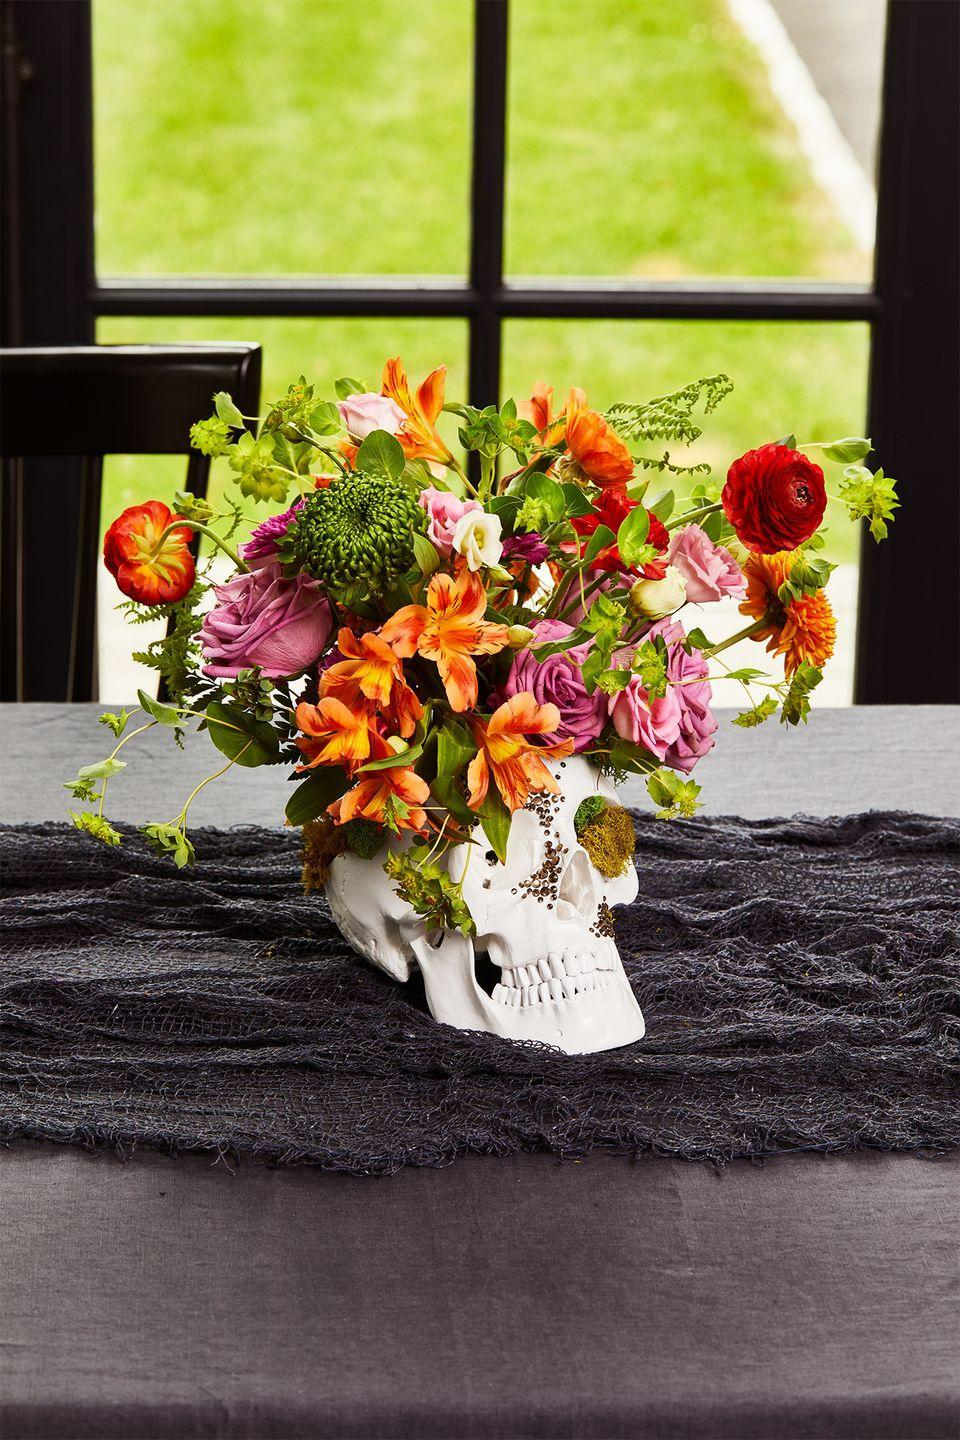 """<p>Channel Morticia Addams to create and add a gothic, otherwordly touch to your dining table with a skull centerpiece adorned with self-adhesive <a href=""""https://www.amazon.com/Rhinestone-Stickers-Nicpro-Self-Adhesive-Embellishments/dp/B0771MPKQD/ref=sr_1_3_sspa?tag=syn-yahoo-20&ascsubtag=%5Bartid%7C10055.g.33437890%5Bsrc%7Cyahoo-us"""" rel=""""nofollow noopener"""" target=""""_blank"""" data-ylk=""""slk:rhinestones"""" class=""""link rapid-noclick-resp"""">rhinestones</a>. Place a jar or cup inside a <a href=""""https://www.amazon.com/Wellden-Medical-Anatomical-Classic-3-part/dp/B0077B3L42/ref=sr_1_11?tag=syn-yahoo-20&ascsubtag=%5Bartid%7C10055.g.33437890%5Bsrc%7Cyahoo-us"""" rel=""""nofollow noopener"""" target=""""_blank"""" data-ylk=""""slk:faux skull"""" class=""""link rapid-noclick-resp"""">faux skull</a> with a removable top (you can use small rocks or gravel to help keep the cup in place). Then create a grid of tape on the rim of the jar to keep flower and greenery stems in place. Fill ⅔ with water and begin by arranging greenery and larger blooms in the grid, making sure to remove any leaves or extra stems that will sit below the water line. Finish with more delicate flowers.</p>"""